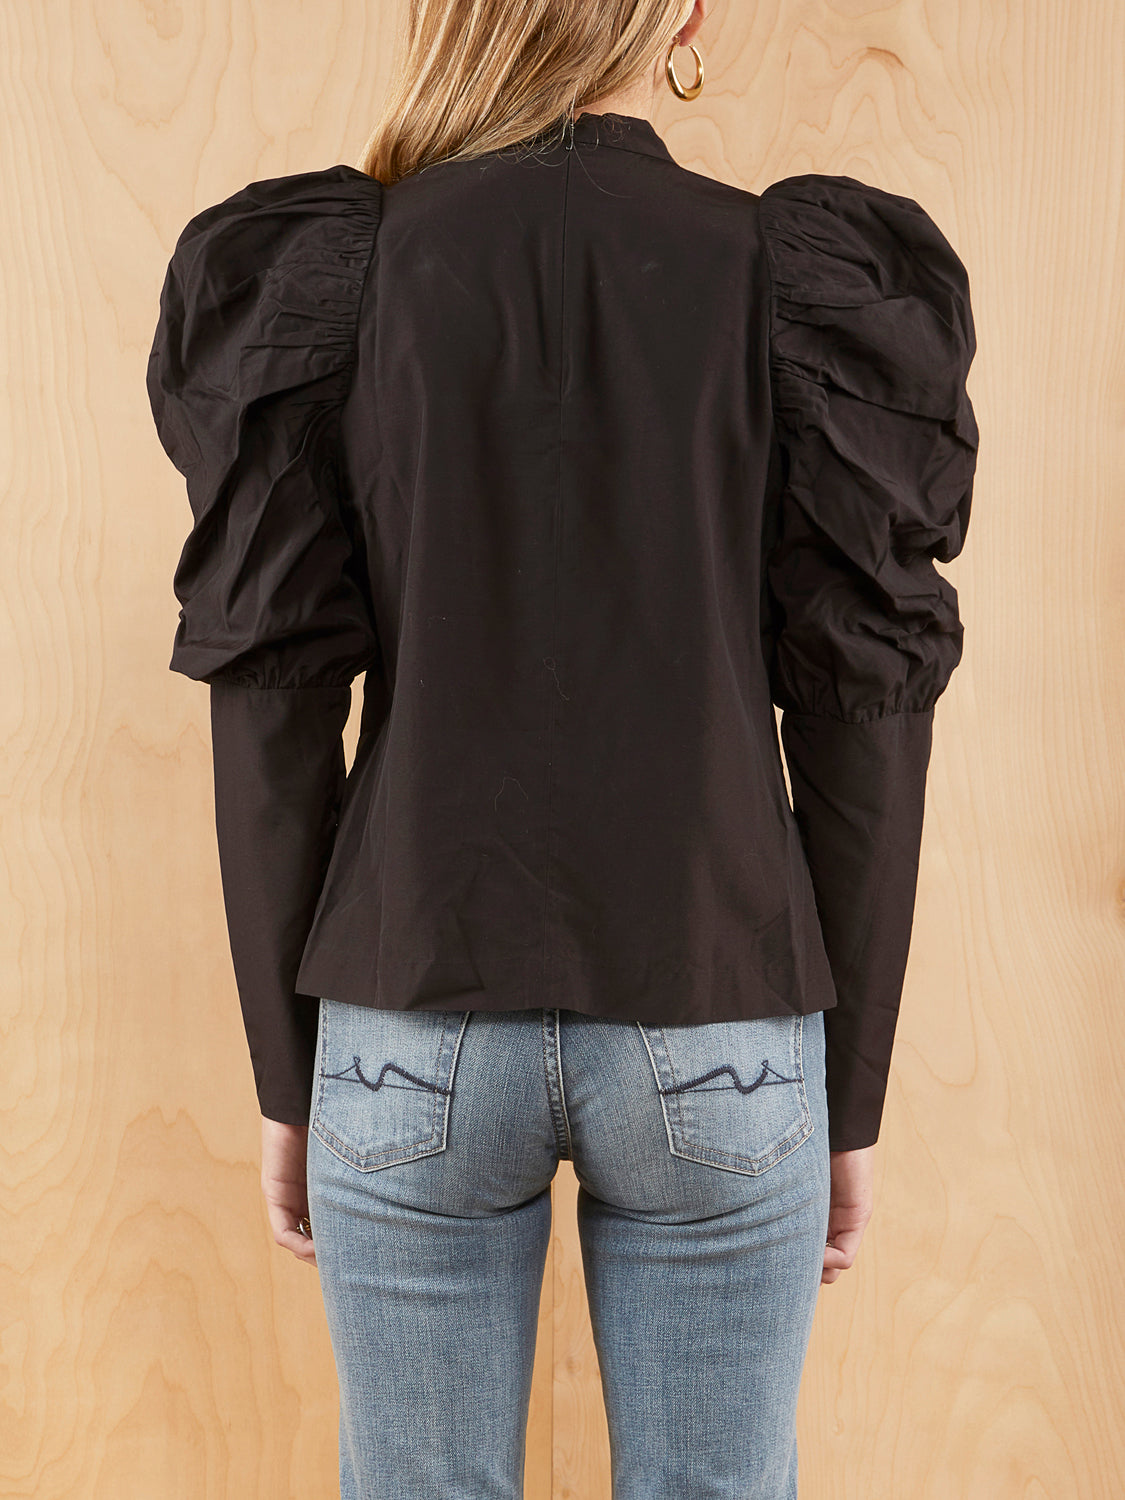 & Other Stories Black Puff Sleeve Blouse